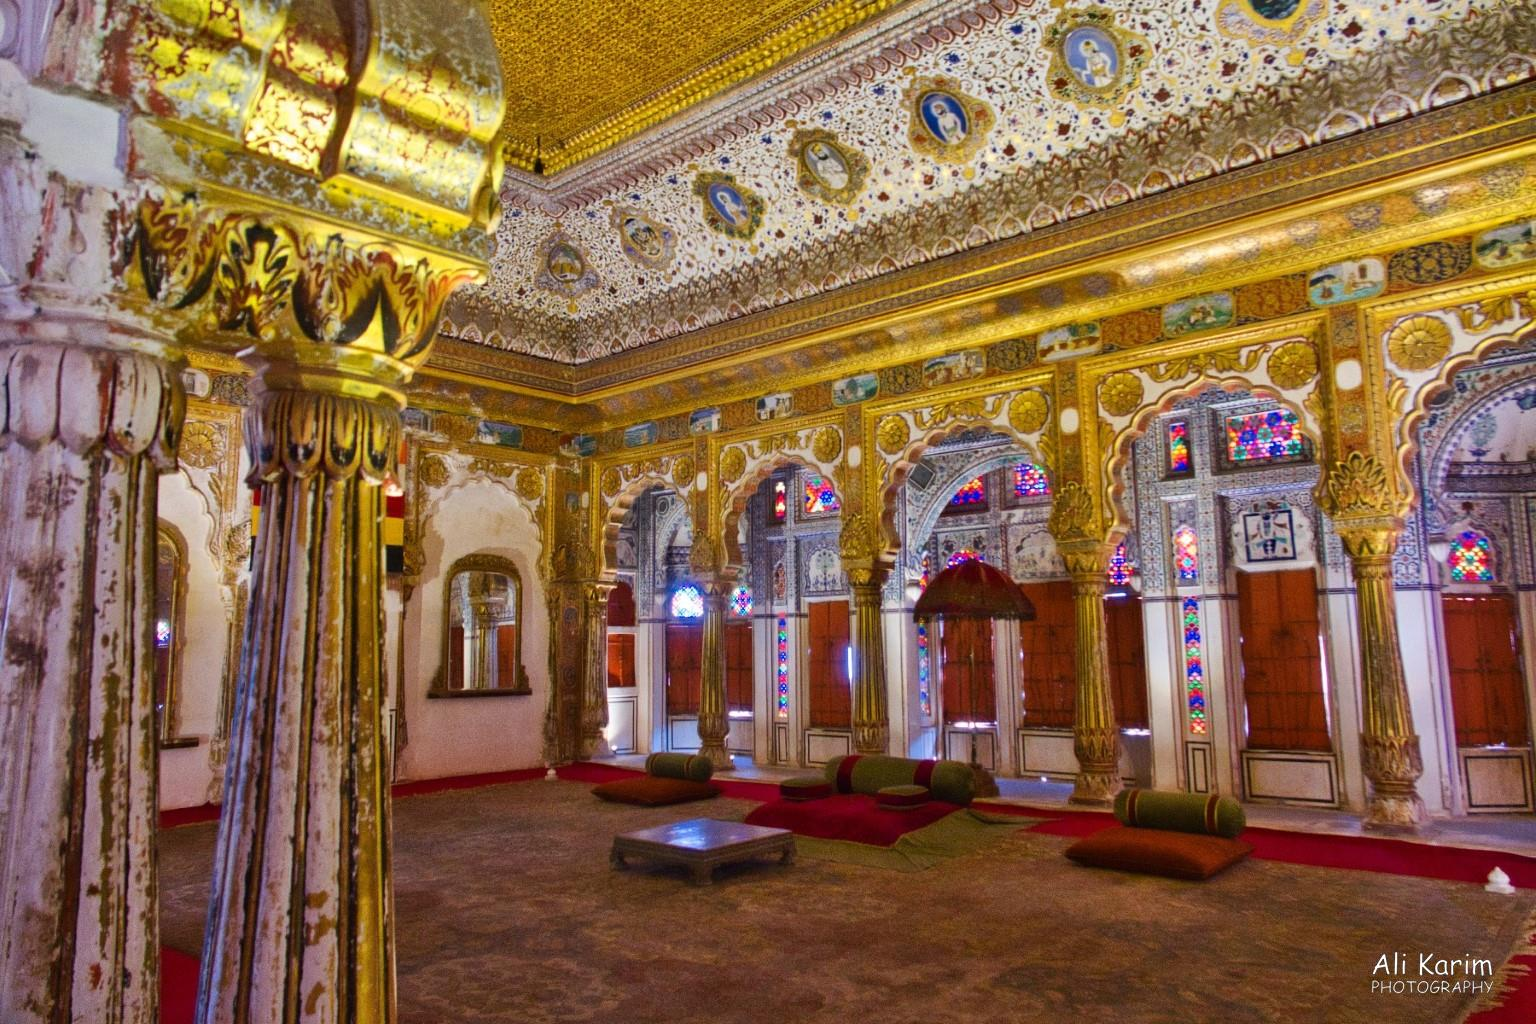 Jodhpur, Rajasthan One splendid darbar (meeting) room of the Maharaja